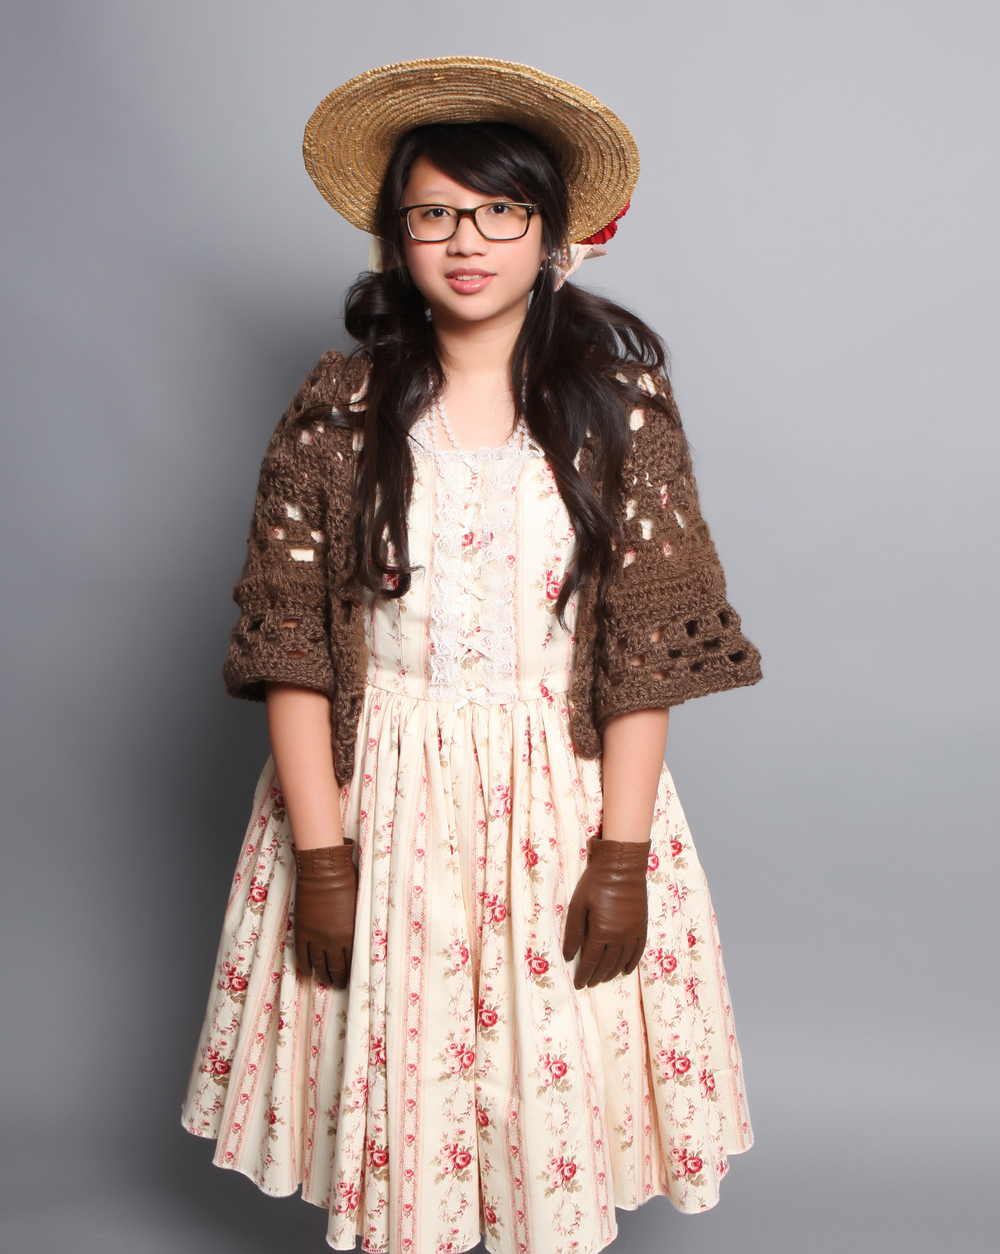 Photography by Beatriz-Fashion-Design-School-Austin-ASFD-Japanese-Harajuku-Fashion-Specialty-Course-classic-country-lolita.jpg